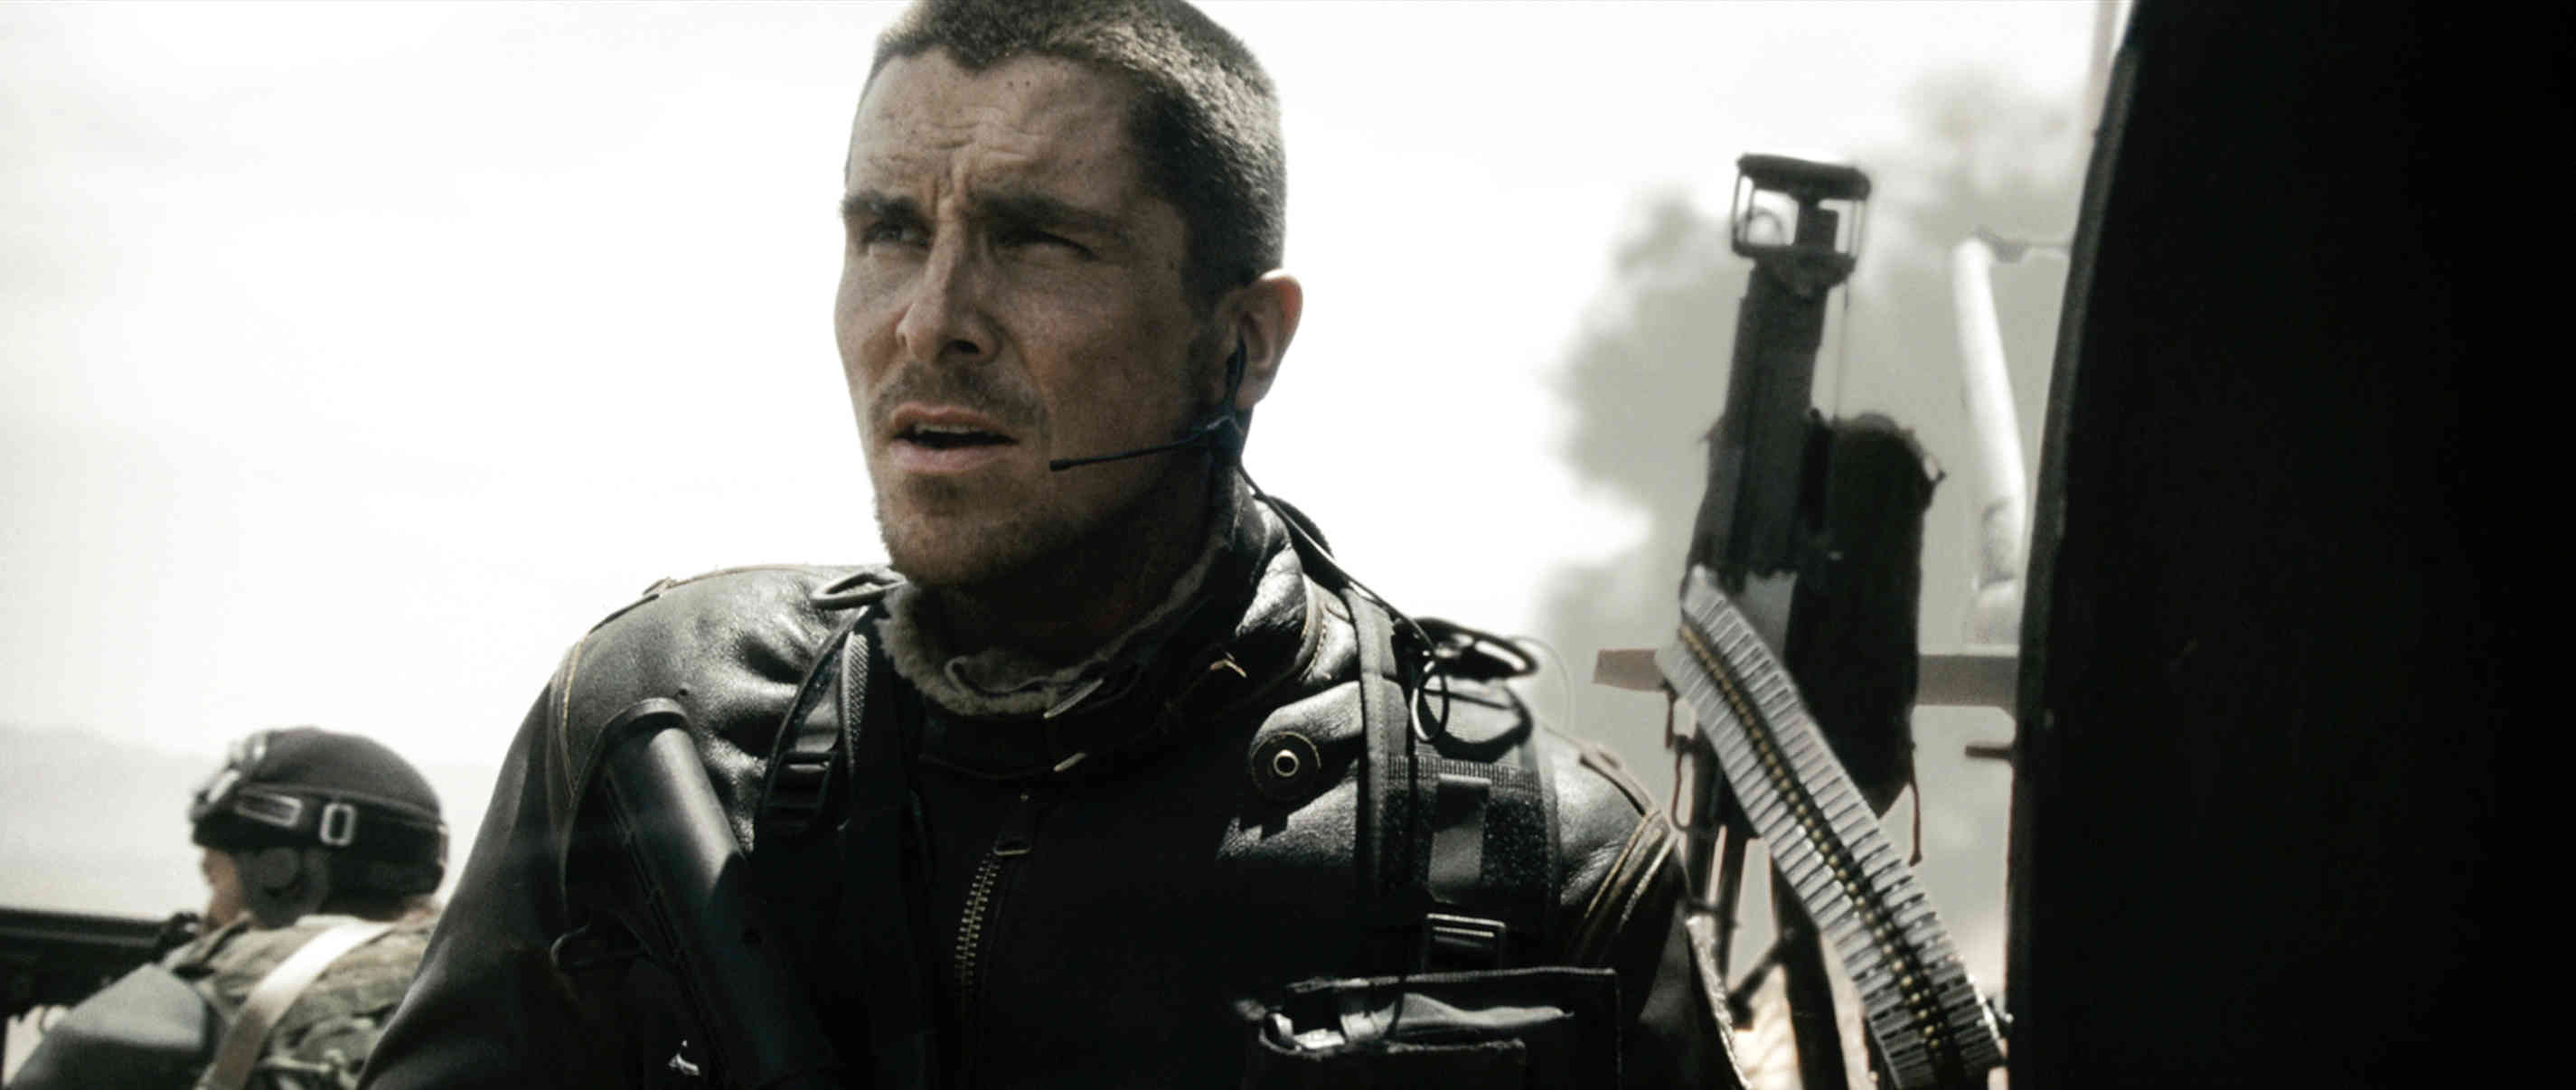 Christian Bale stars as John Connor in Warner Bros. Pictures' Terminator Salvation (2009)